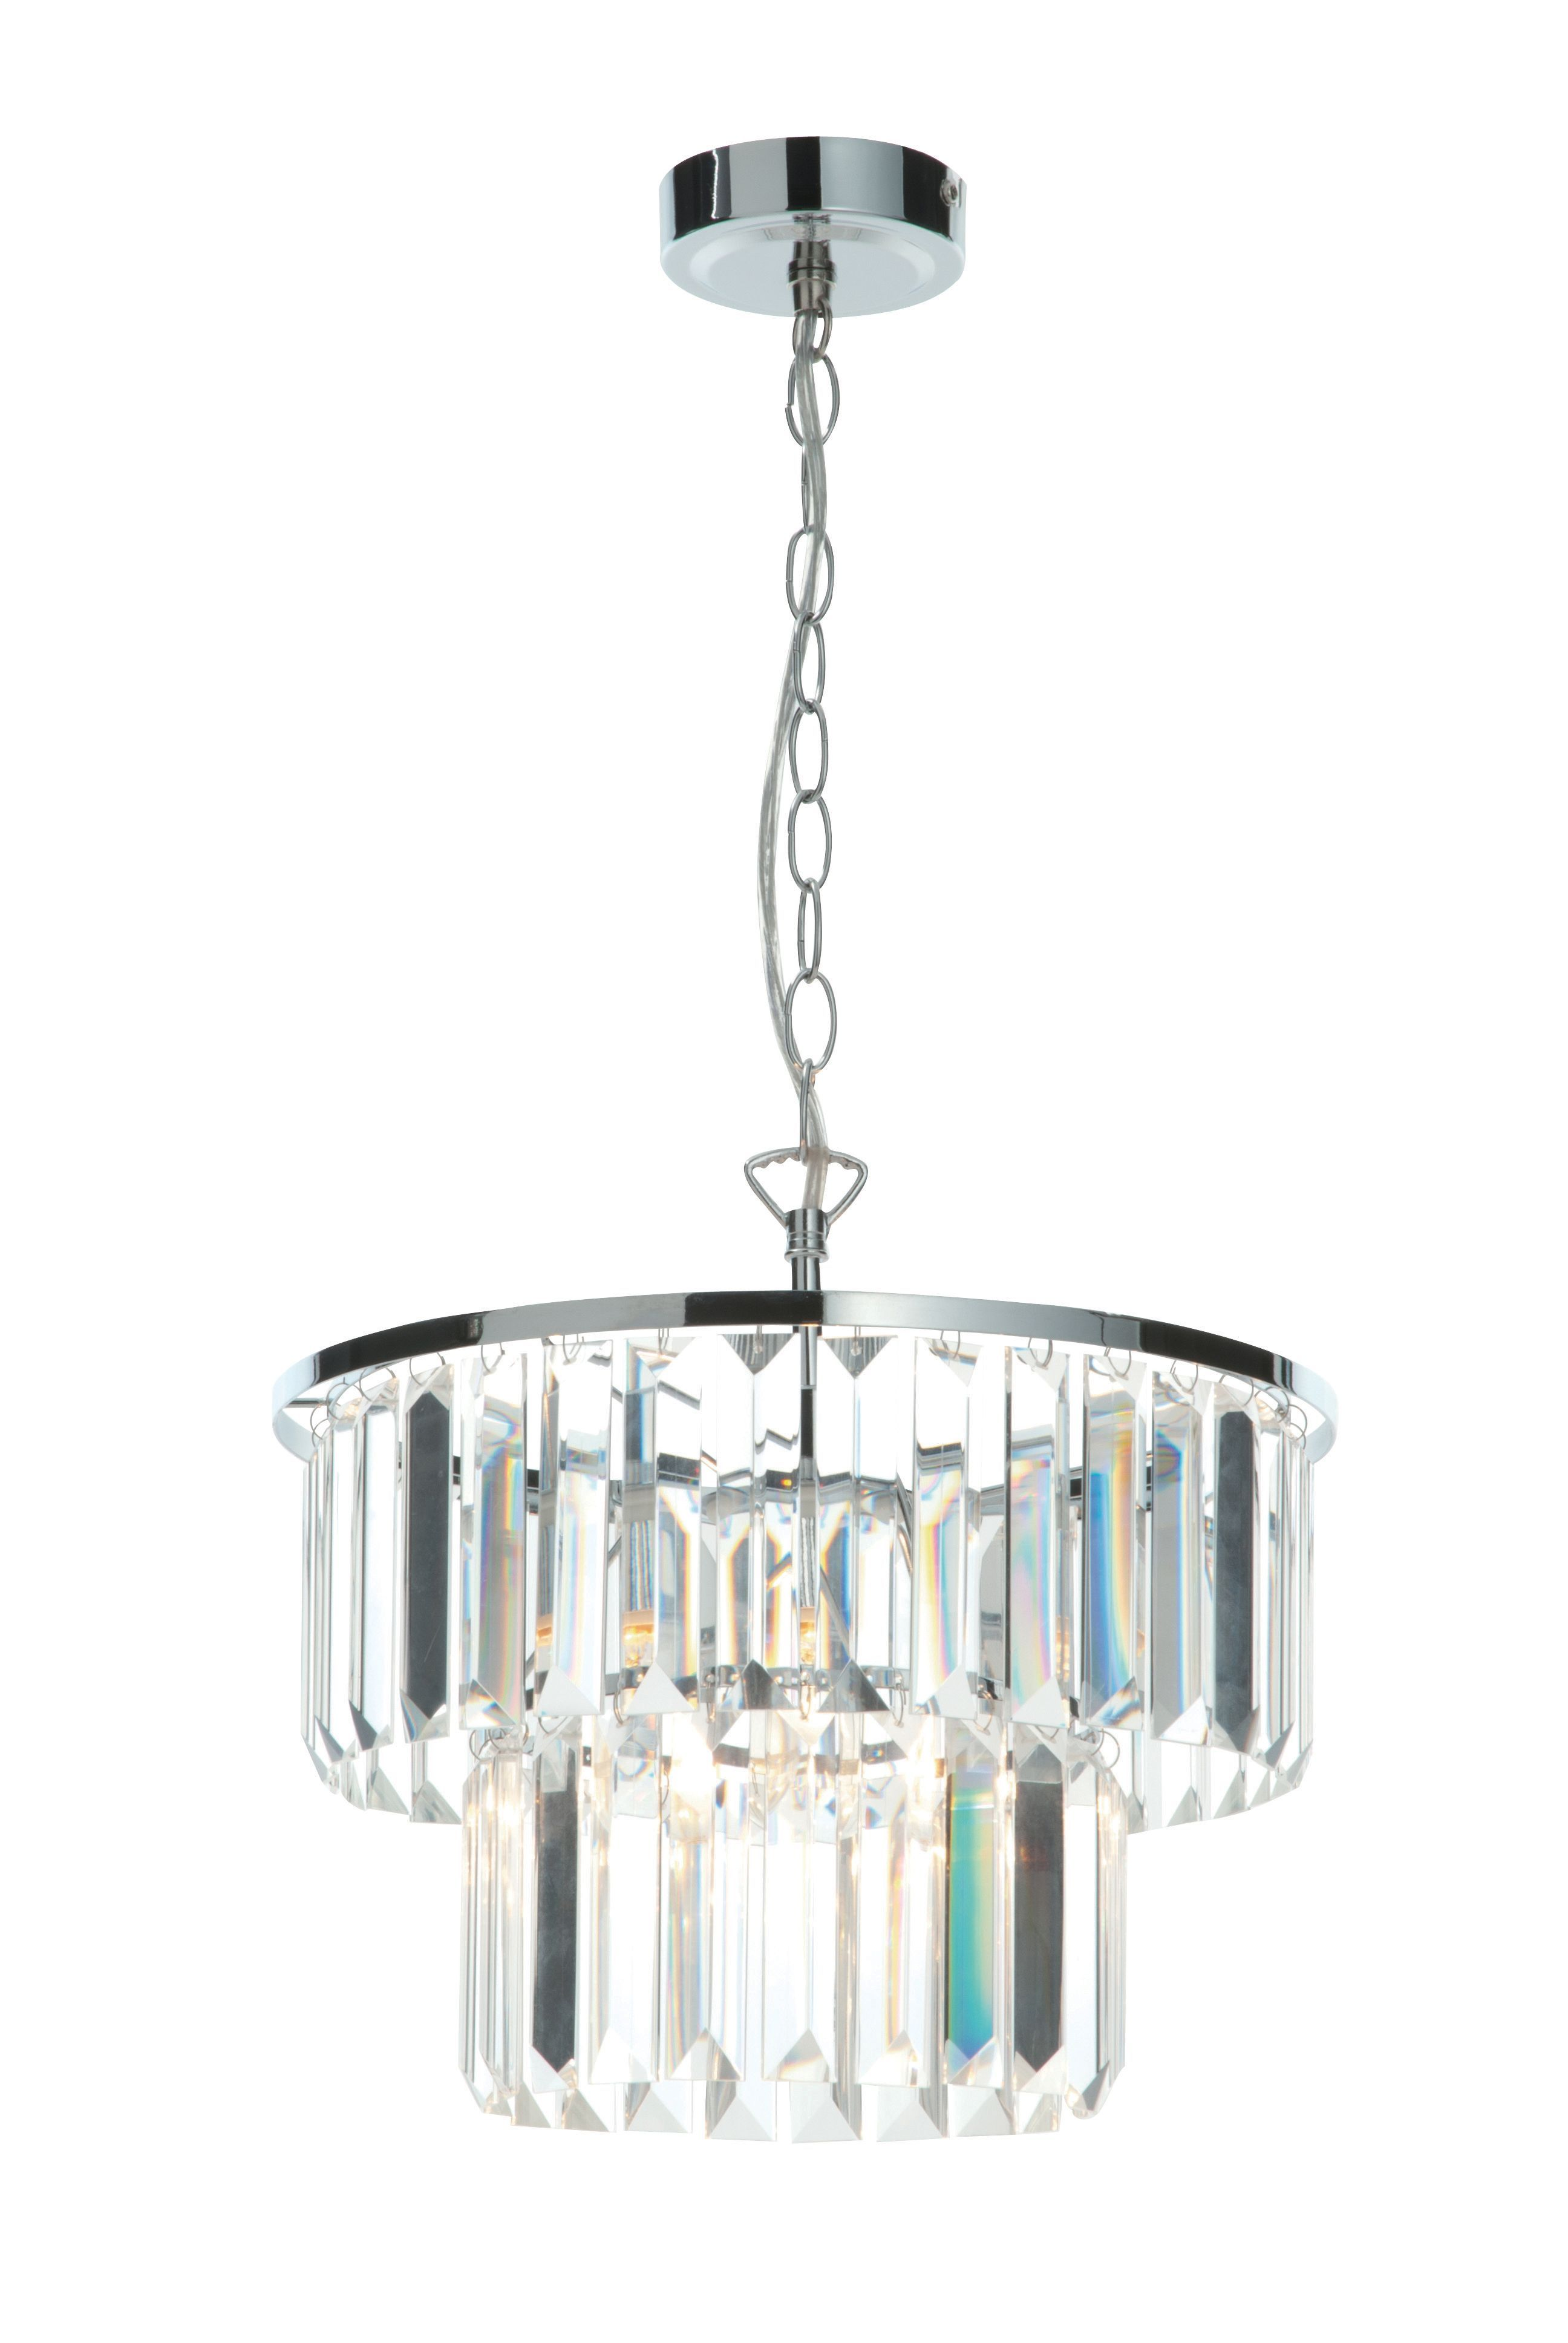 Beaufort Cut Glass Clear Pendant Ceiling Light | Cut glass, Ceiling ...